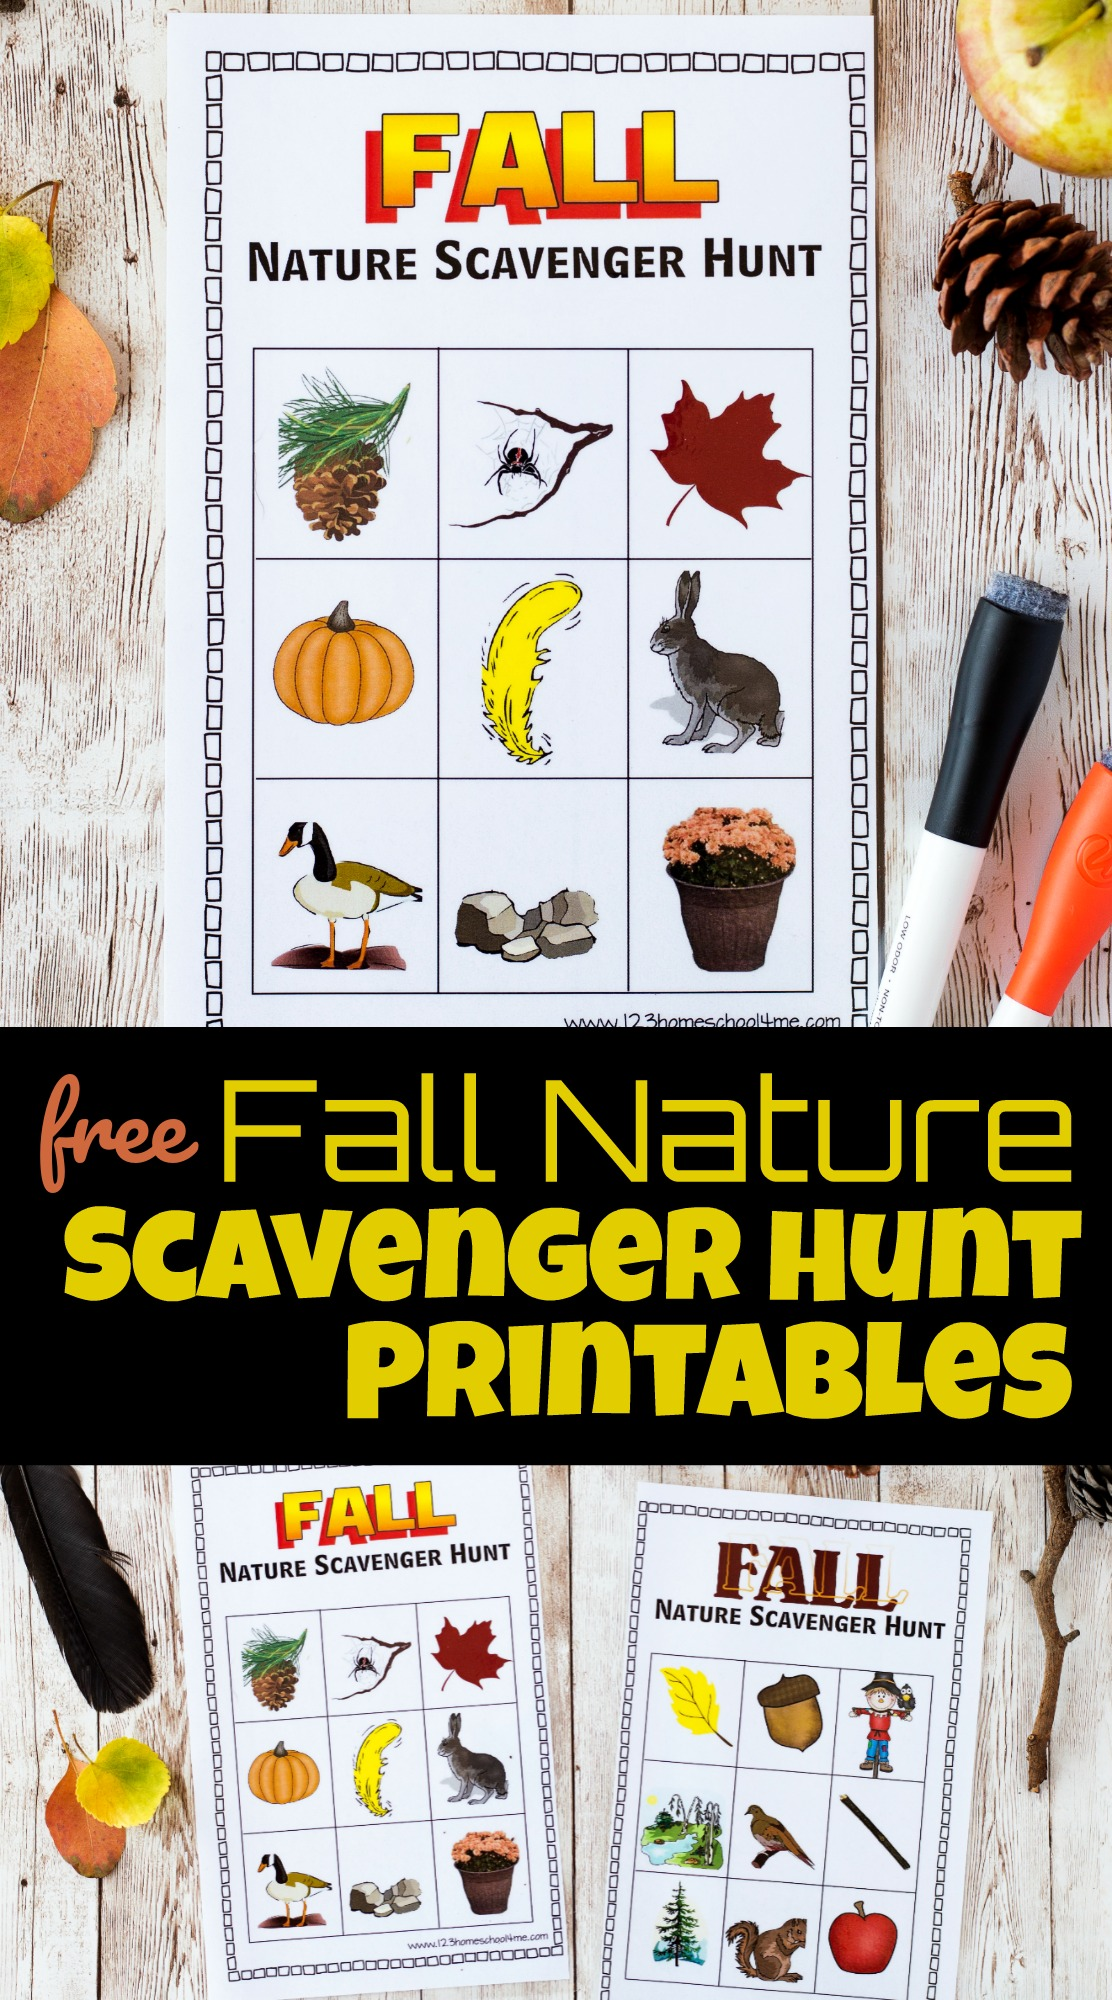 Fall Nature Scavenger Hunt Printables